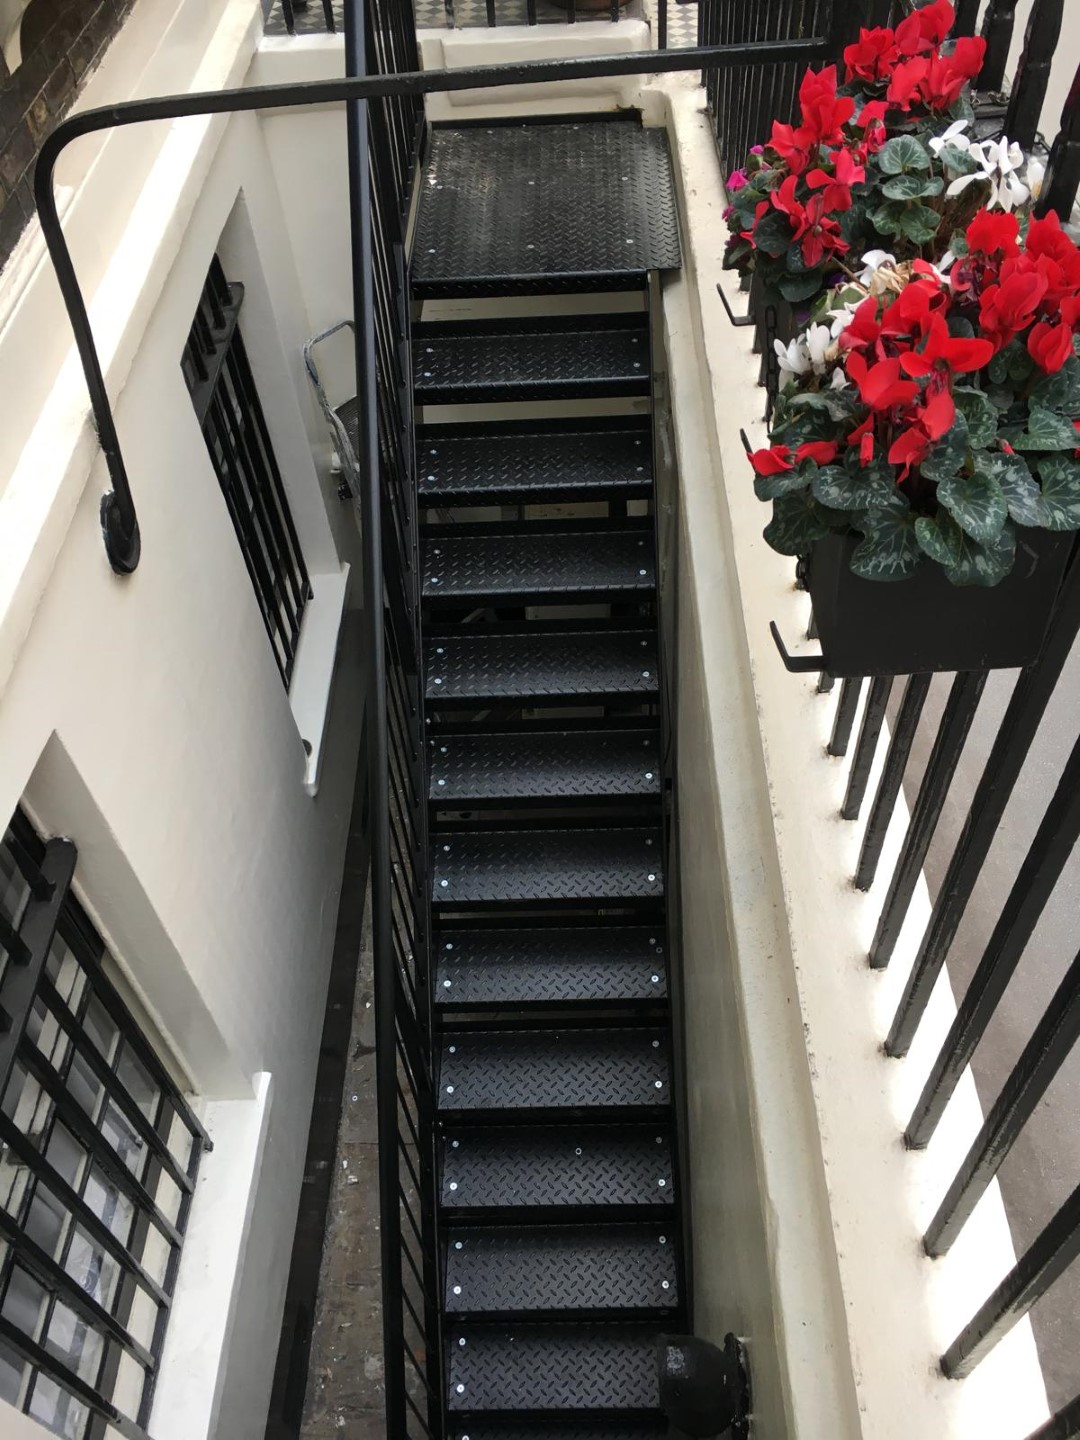 Fire escape manufactured, designed and installed by Bradfabs in London for a hotel